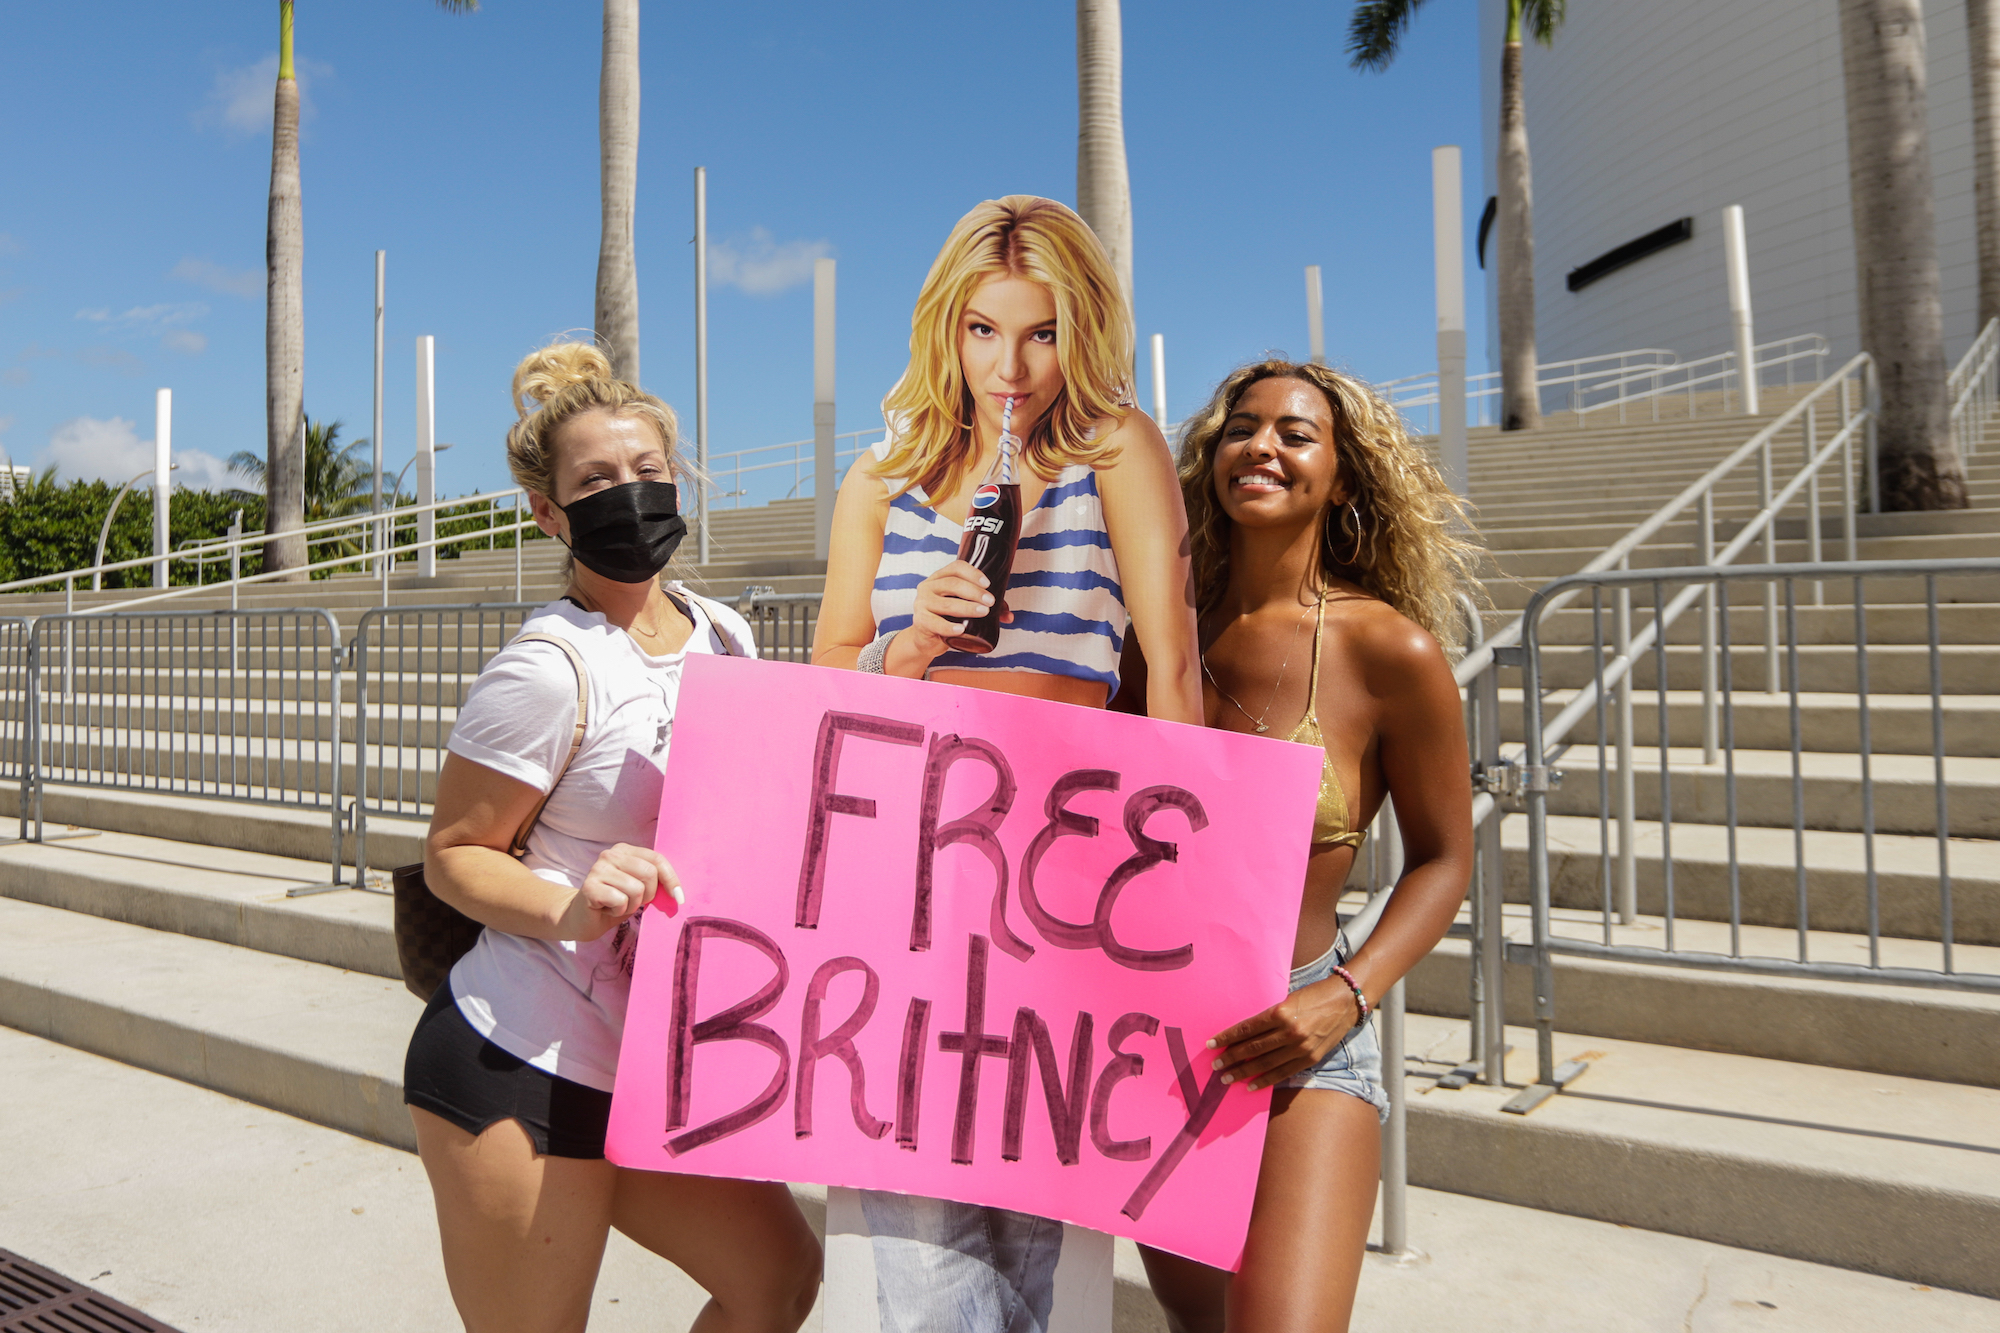 Supporters of Britney Spears holds a sign during a #FreeBritney protest on Feb. 11, 2021 in Miami, Florida